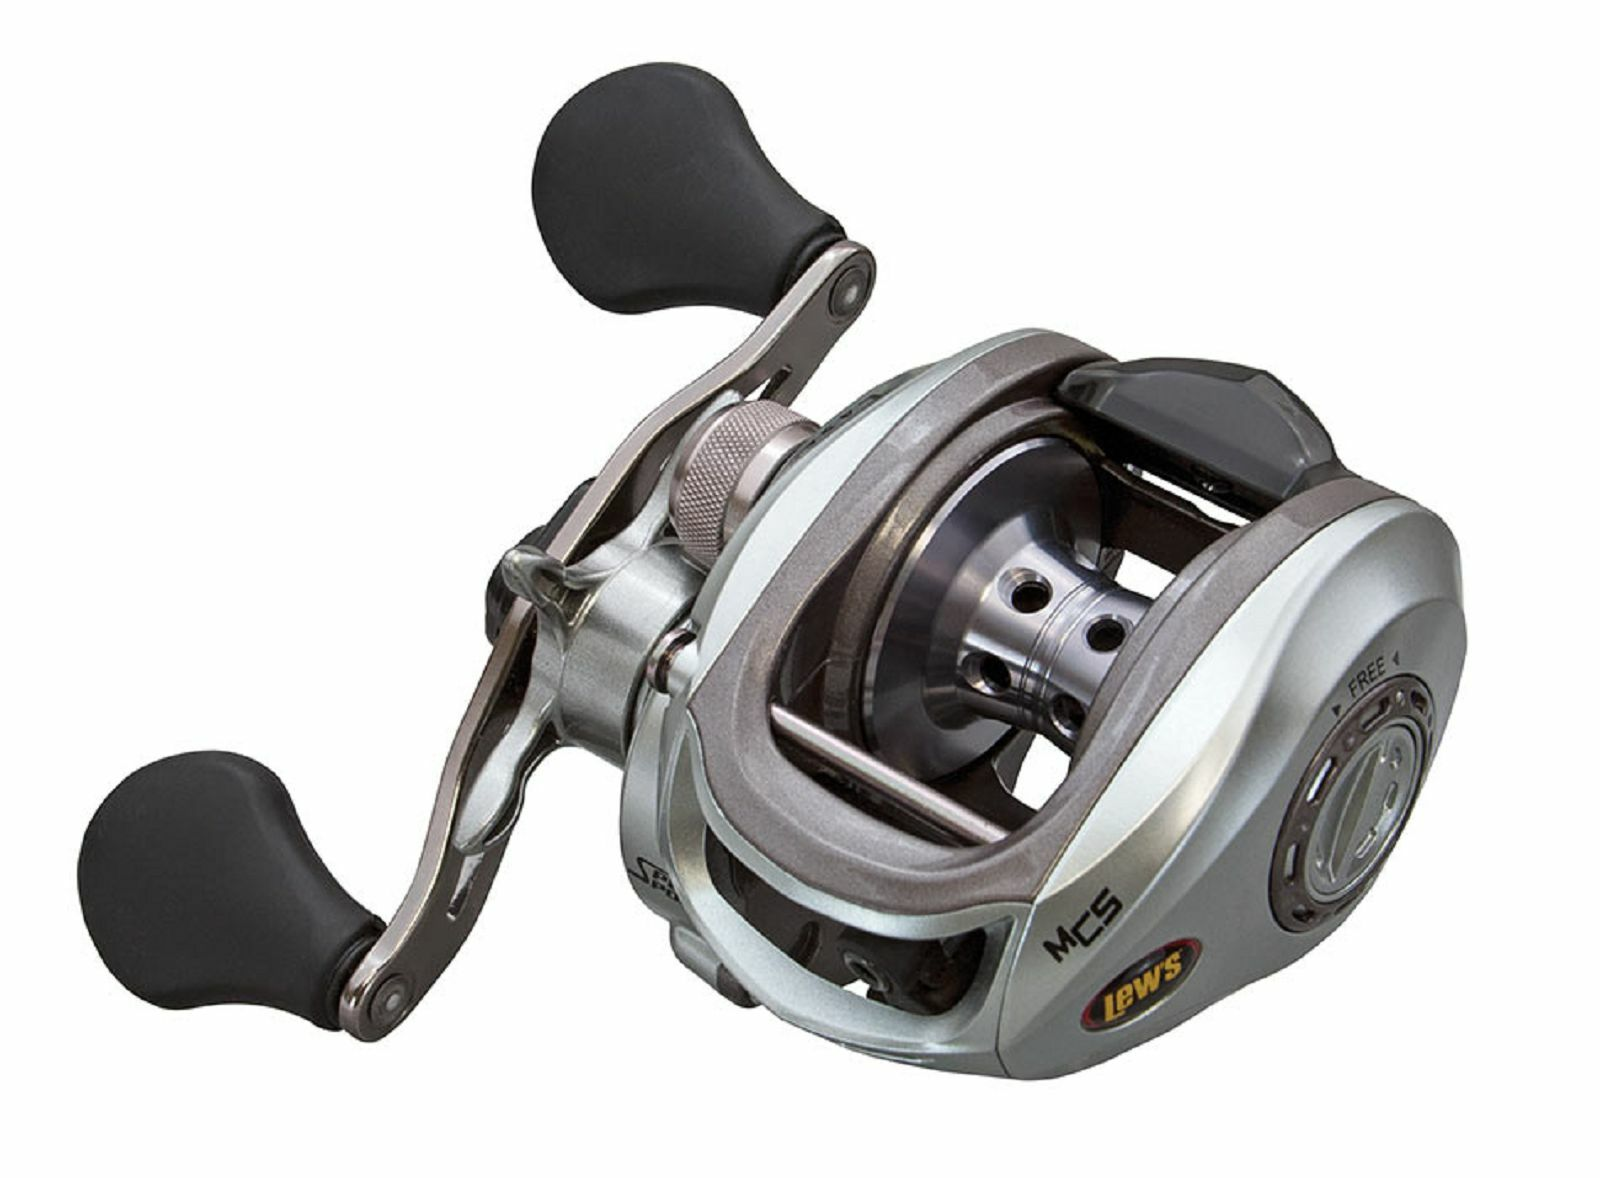 LEW'S LASER MG SPEED SPOOL BAITCAST REEL LSG1HMG RIGHT HANDED RECONDITIONED